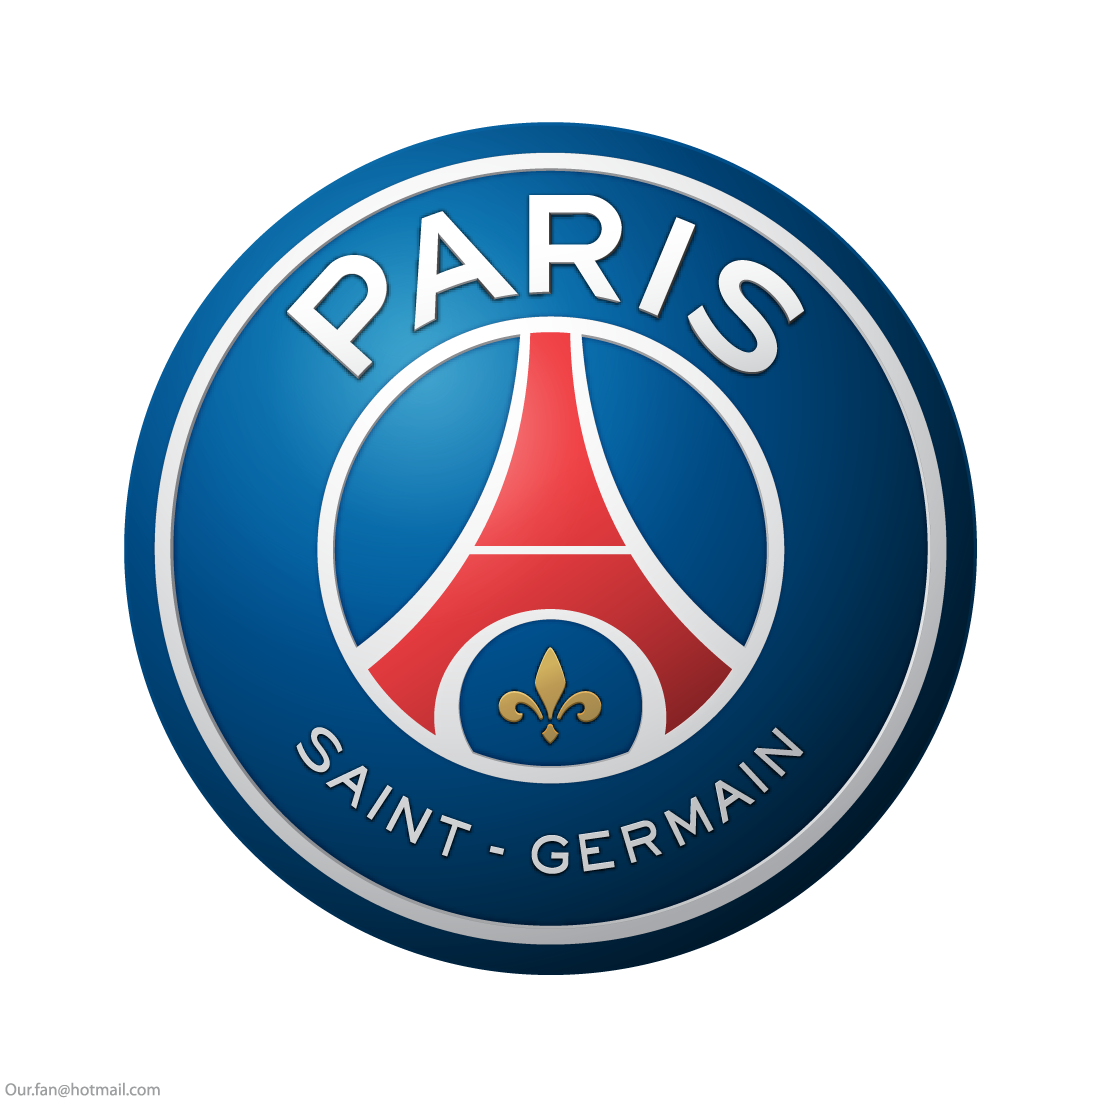 psg logo escudo paris saint germain 3 - PSG Logo - Escudo - Paris Saint-Germain Logo - Escudo